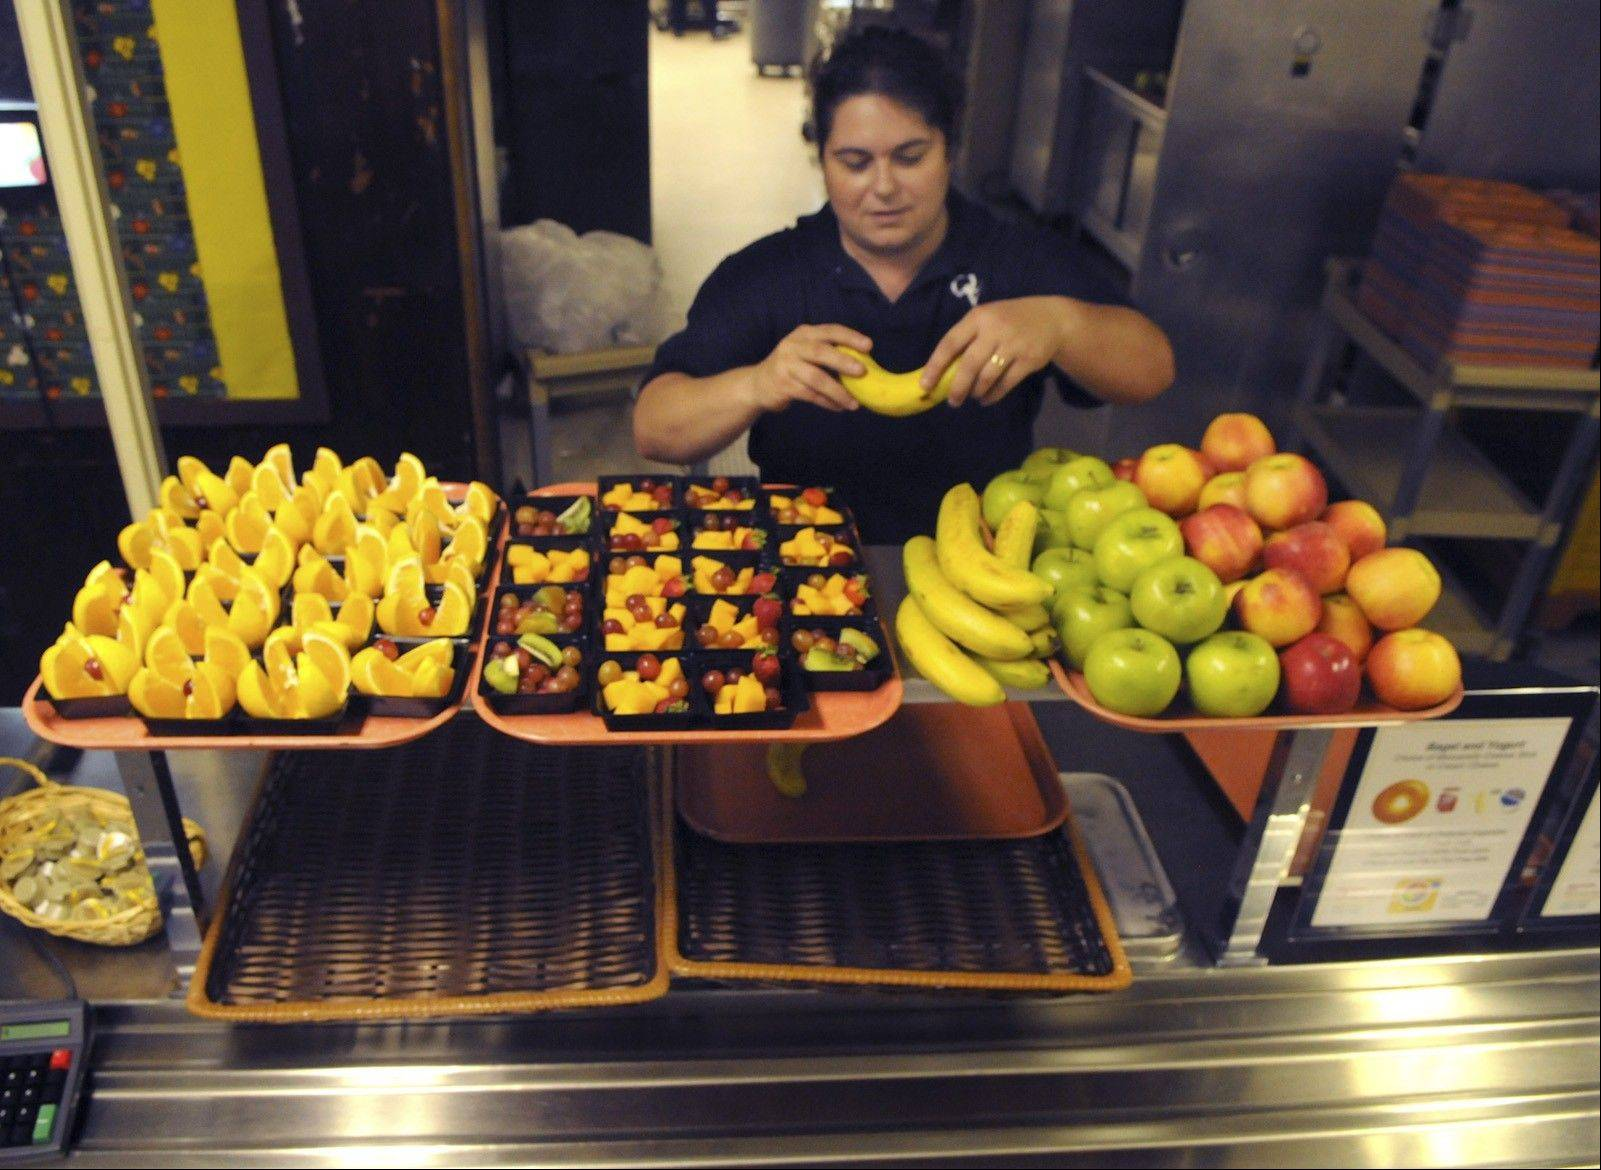 Samantha Hiller arranges the fresh fruit at Quaker Valley's Anthony Wayne Middle School. New federal school lunch regulations are changing how cafeteria workers prepare and present food, such as creating eye-catching display to entice students.